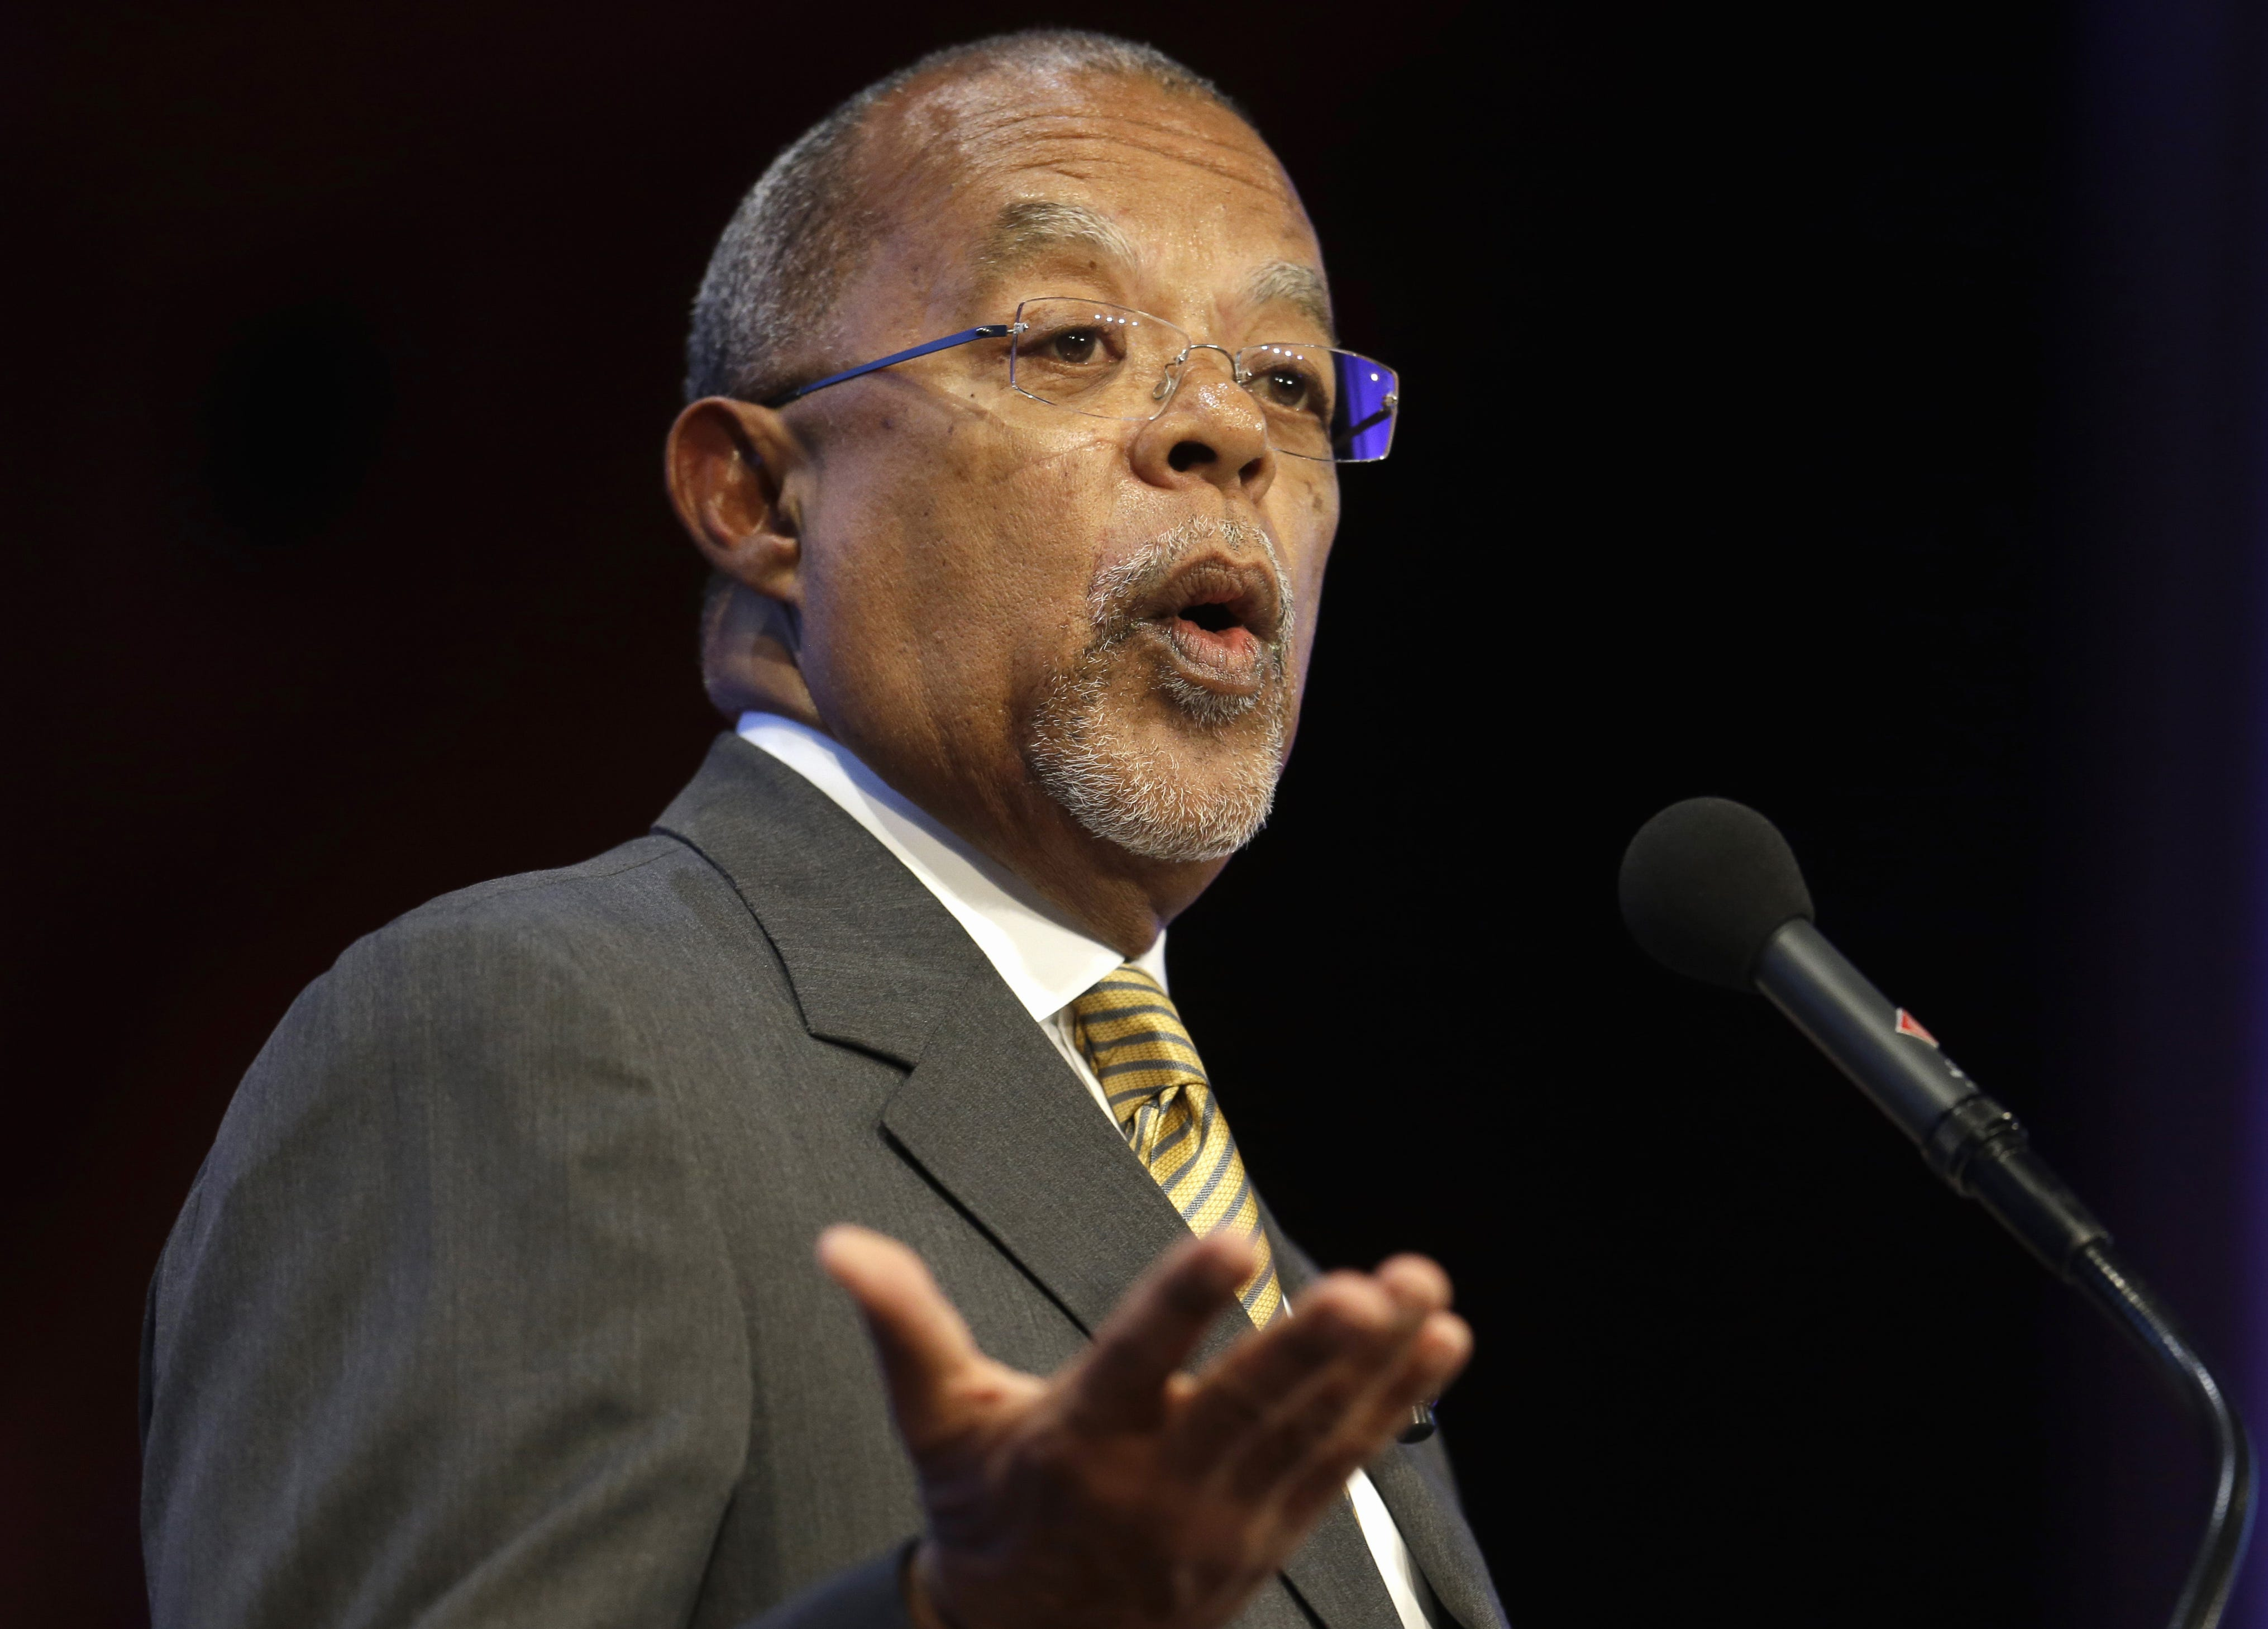 'Finding Your Roots' amid the hard questions of history, identity